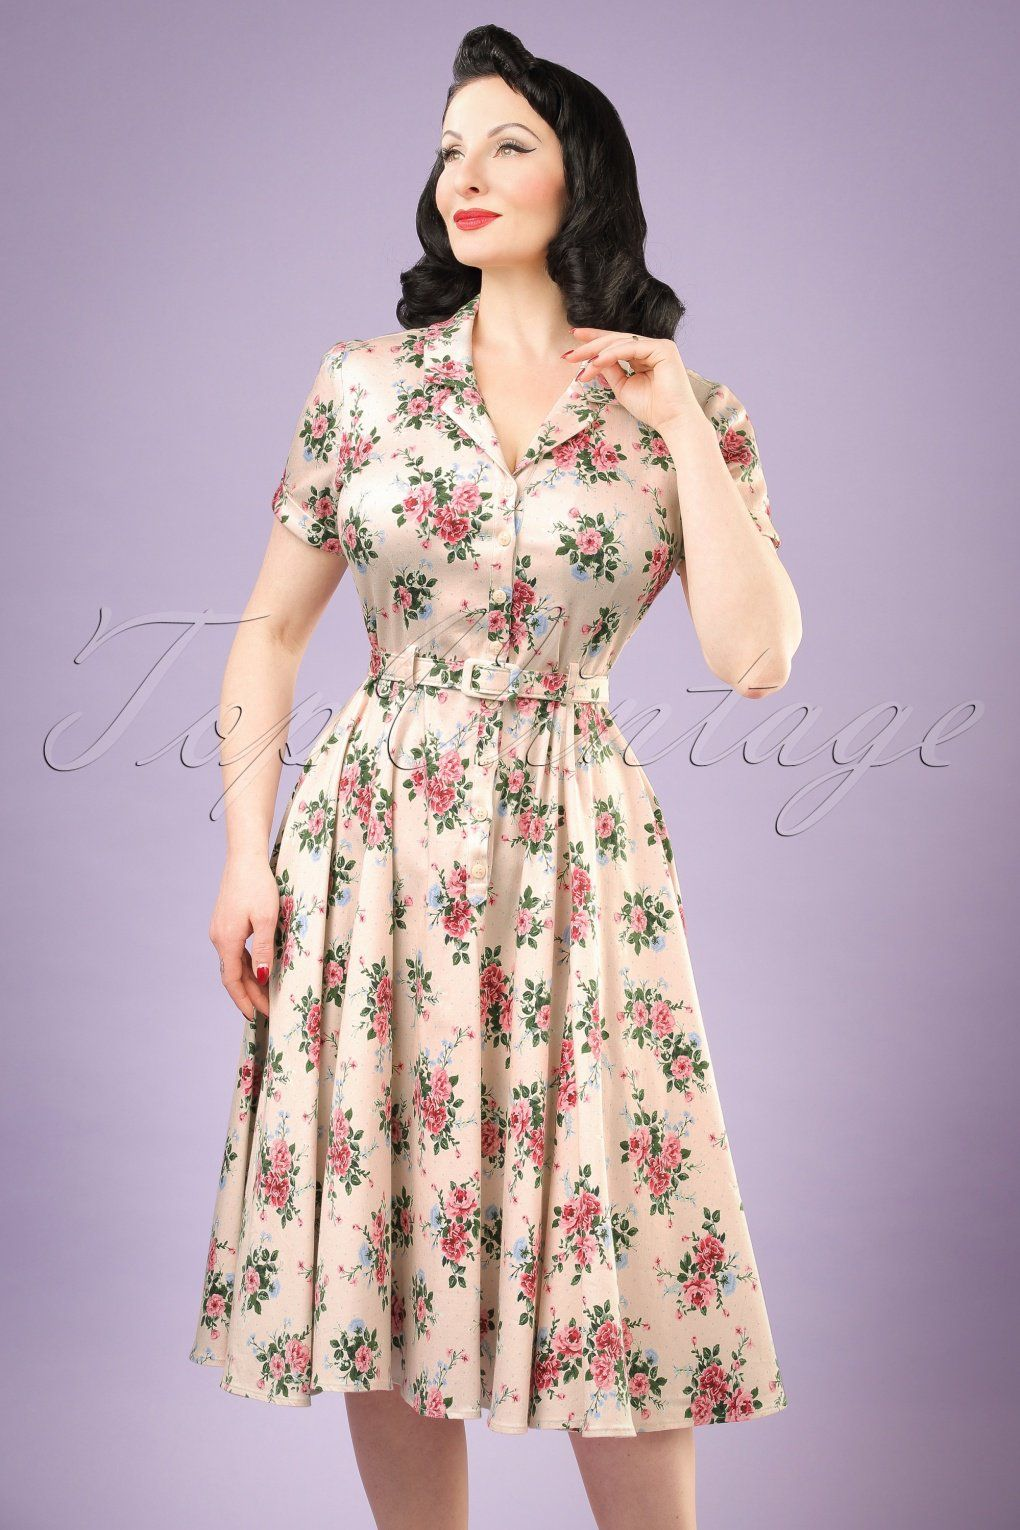 b93615fa811cc Retro Style Dresses 40s Caterina Floral Swing Dress in Beige £69.26 AT  vintagedancer.com